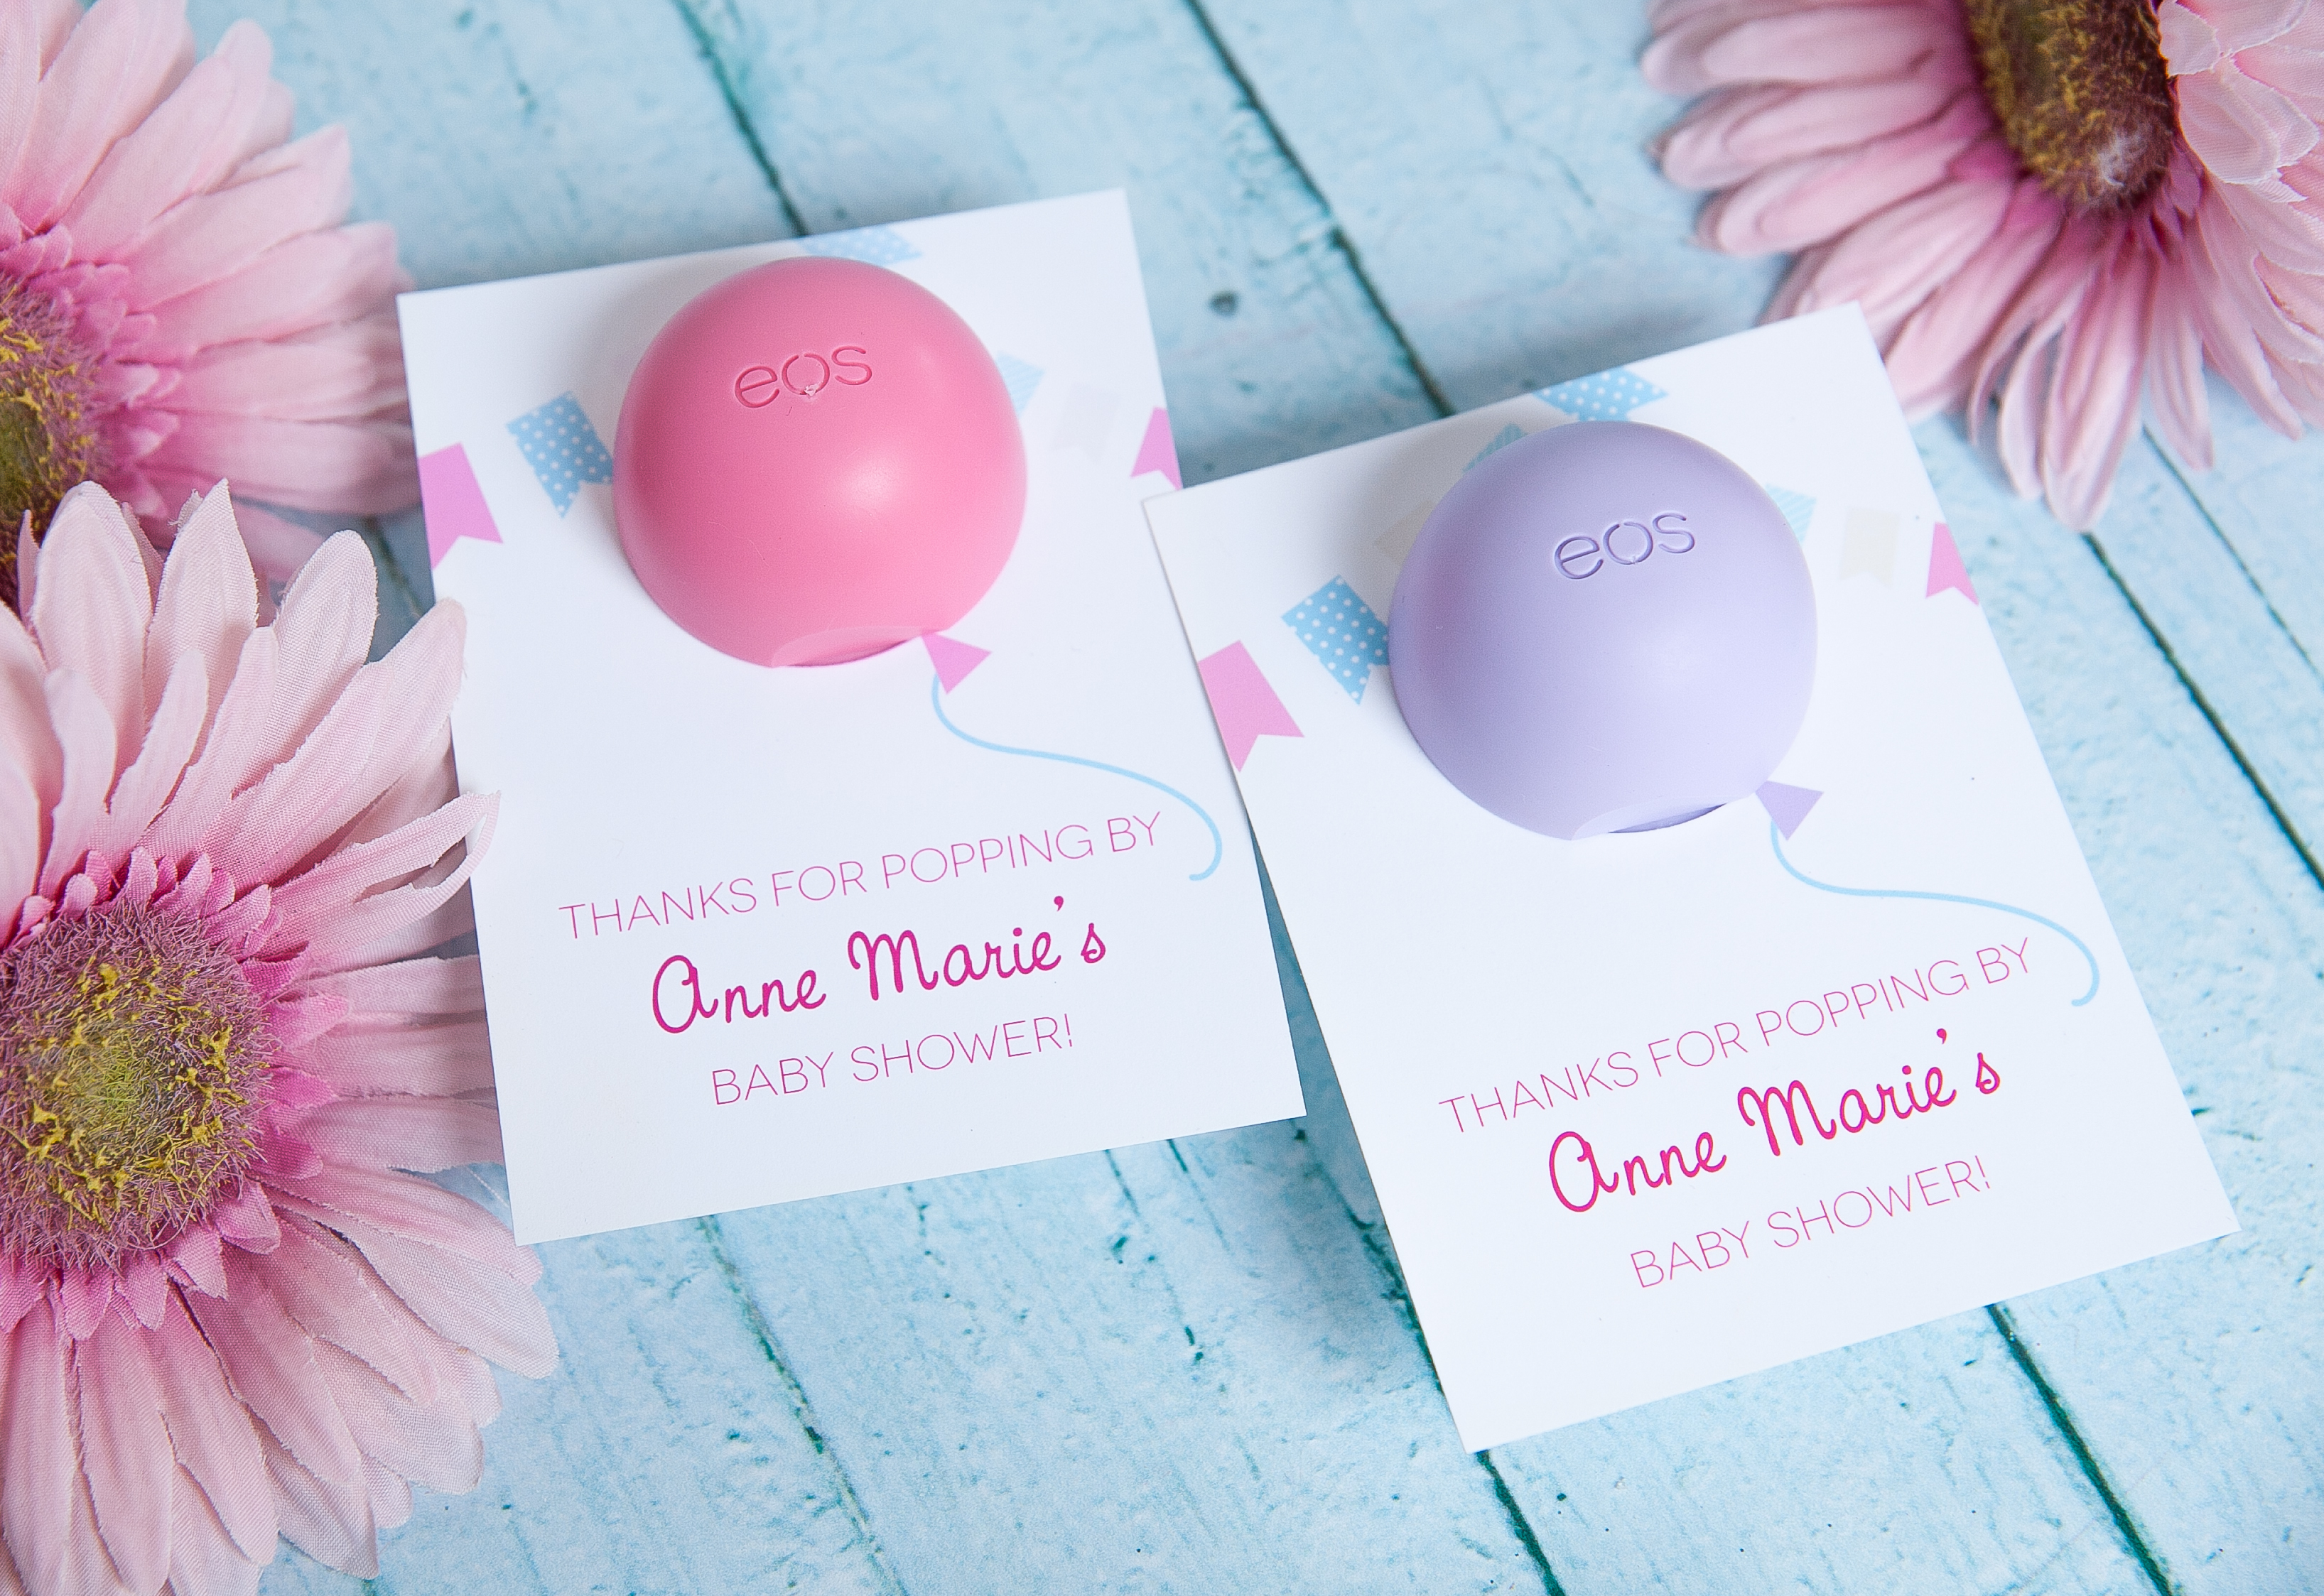 About To Pop Baby Shower Favor - Project Nursery - Free Printable Ready To Pop Labels